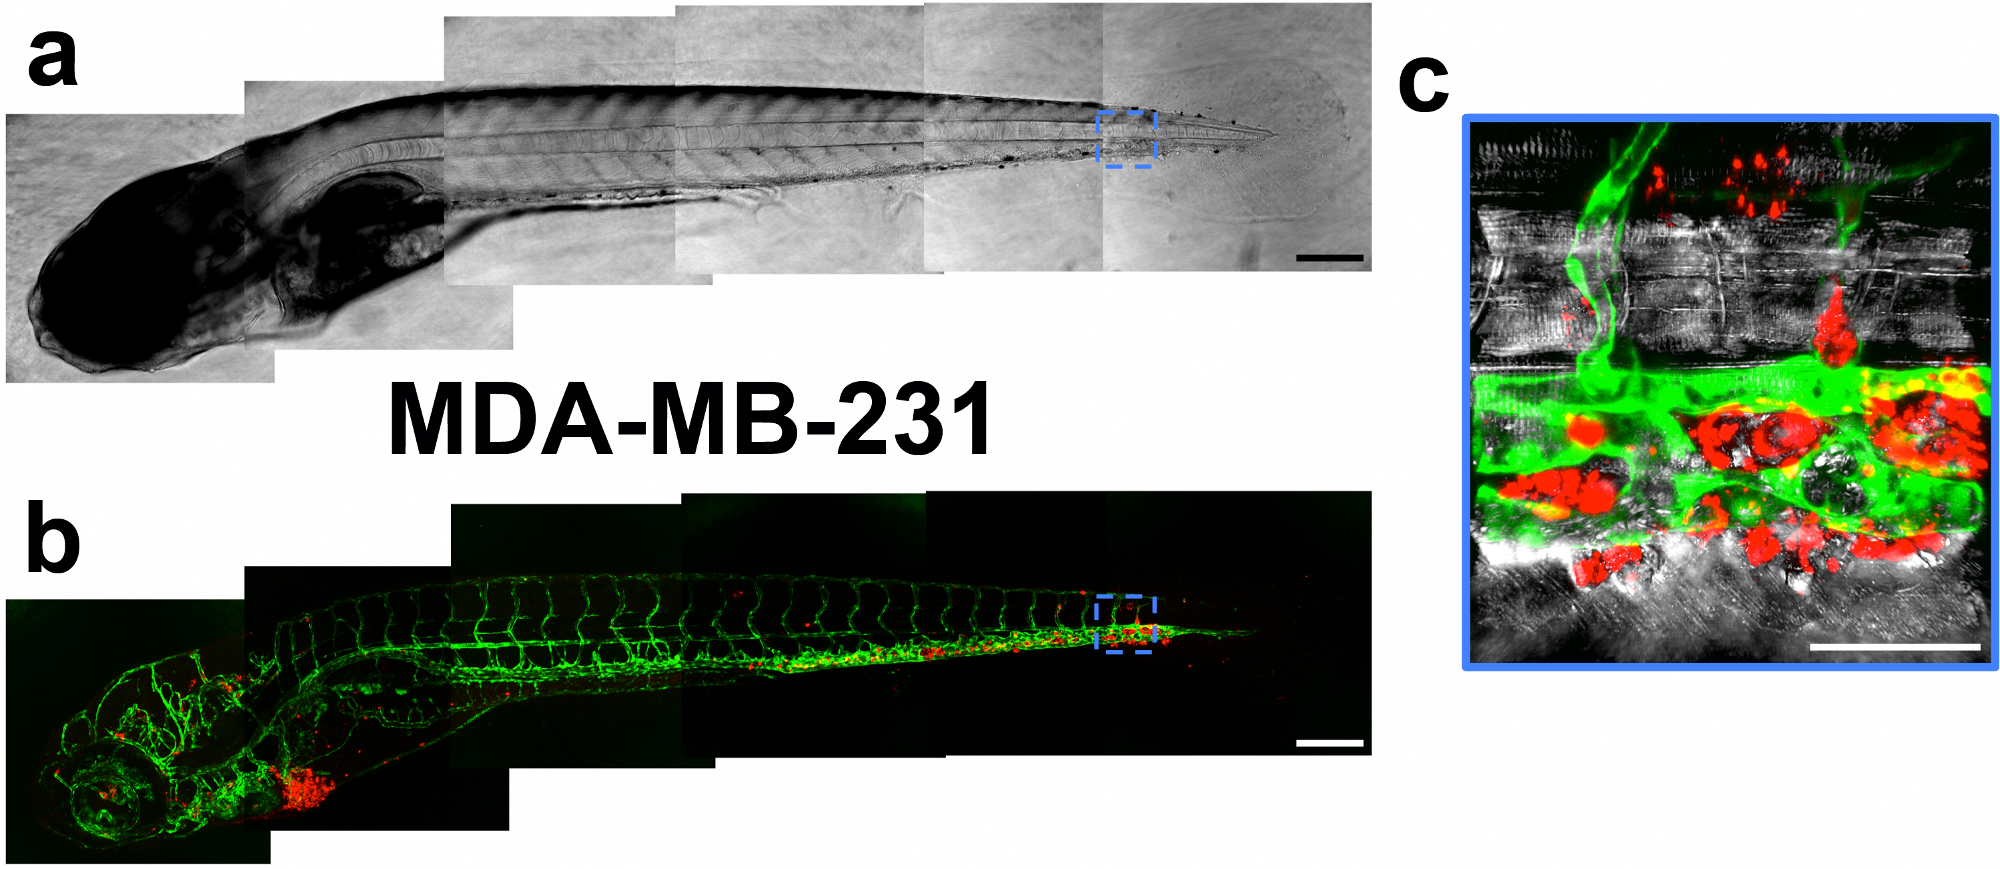 Testing the Vascular Invasive Ability of Cancer Cells in Zebrafish